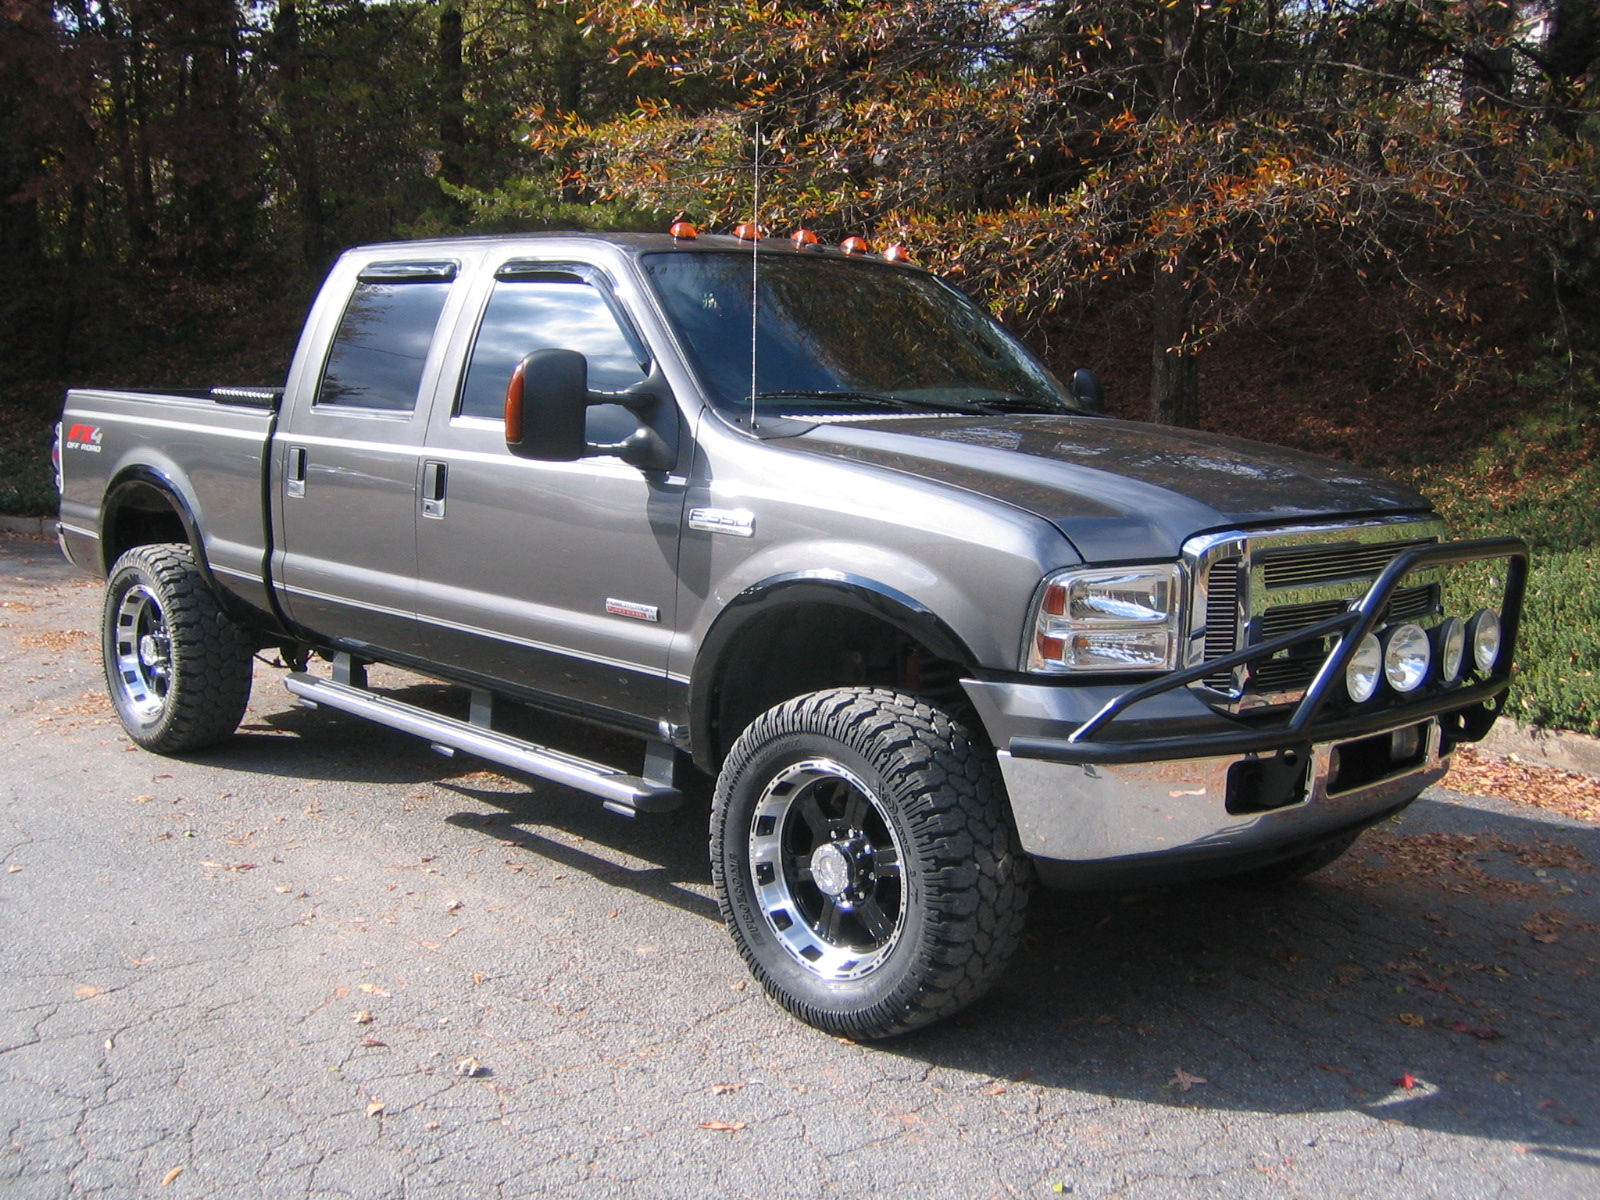 Ford F-350 Super Duty 2007 #4